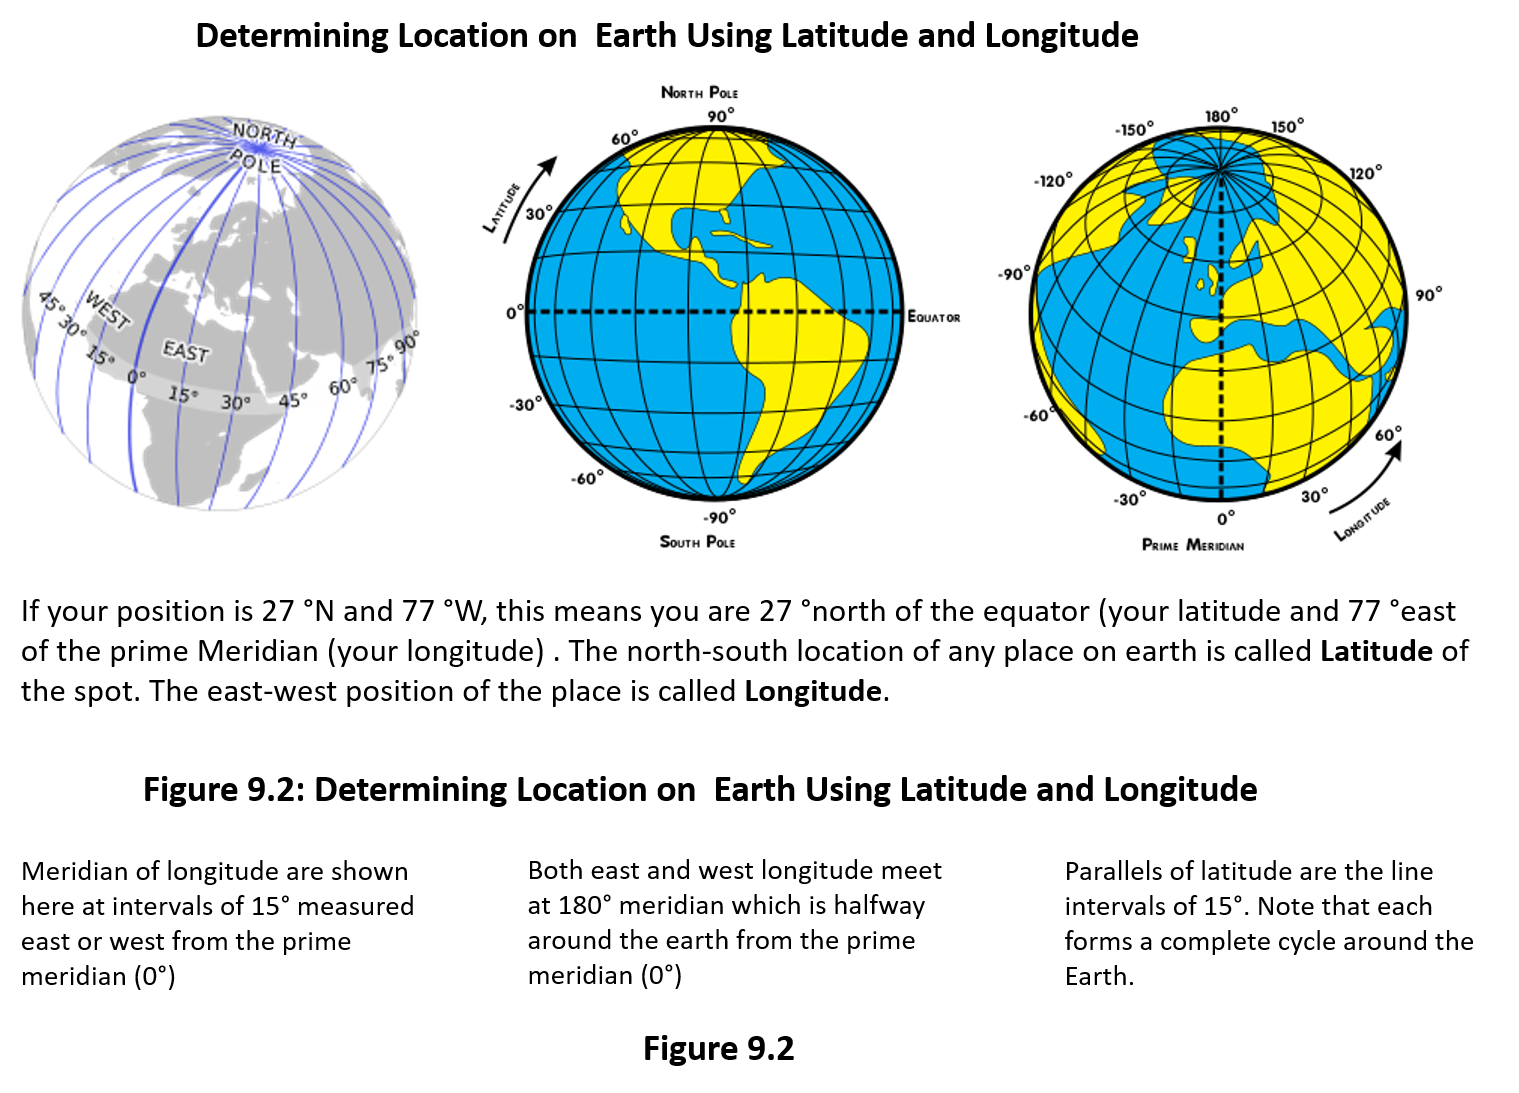 Figure 9.2 shows lines of Latitude running east-west. The most important line of latitude is the equator, which is at 0˚. The equator separates the northern and southern hemispheres. It also shows the lines of Longitude that run north-south and converge at the poles. The most important line of longitude is the Prime Meridian, which is at 0˚. The Prime Meridian separates the Eastern and Western hemispheres.